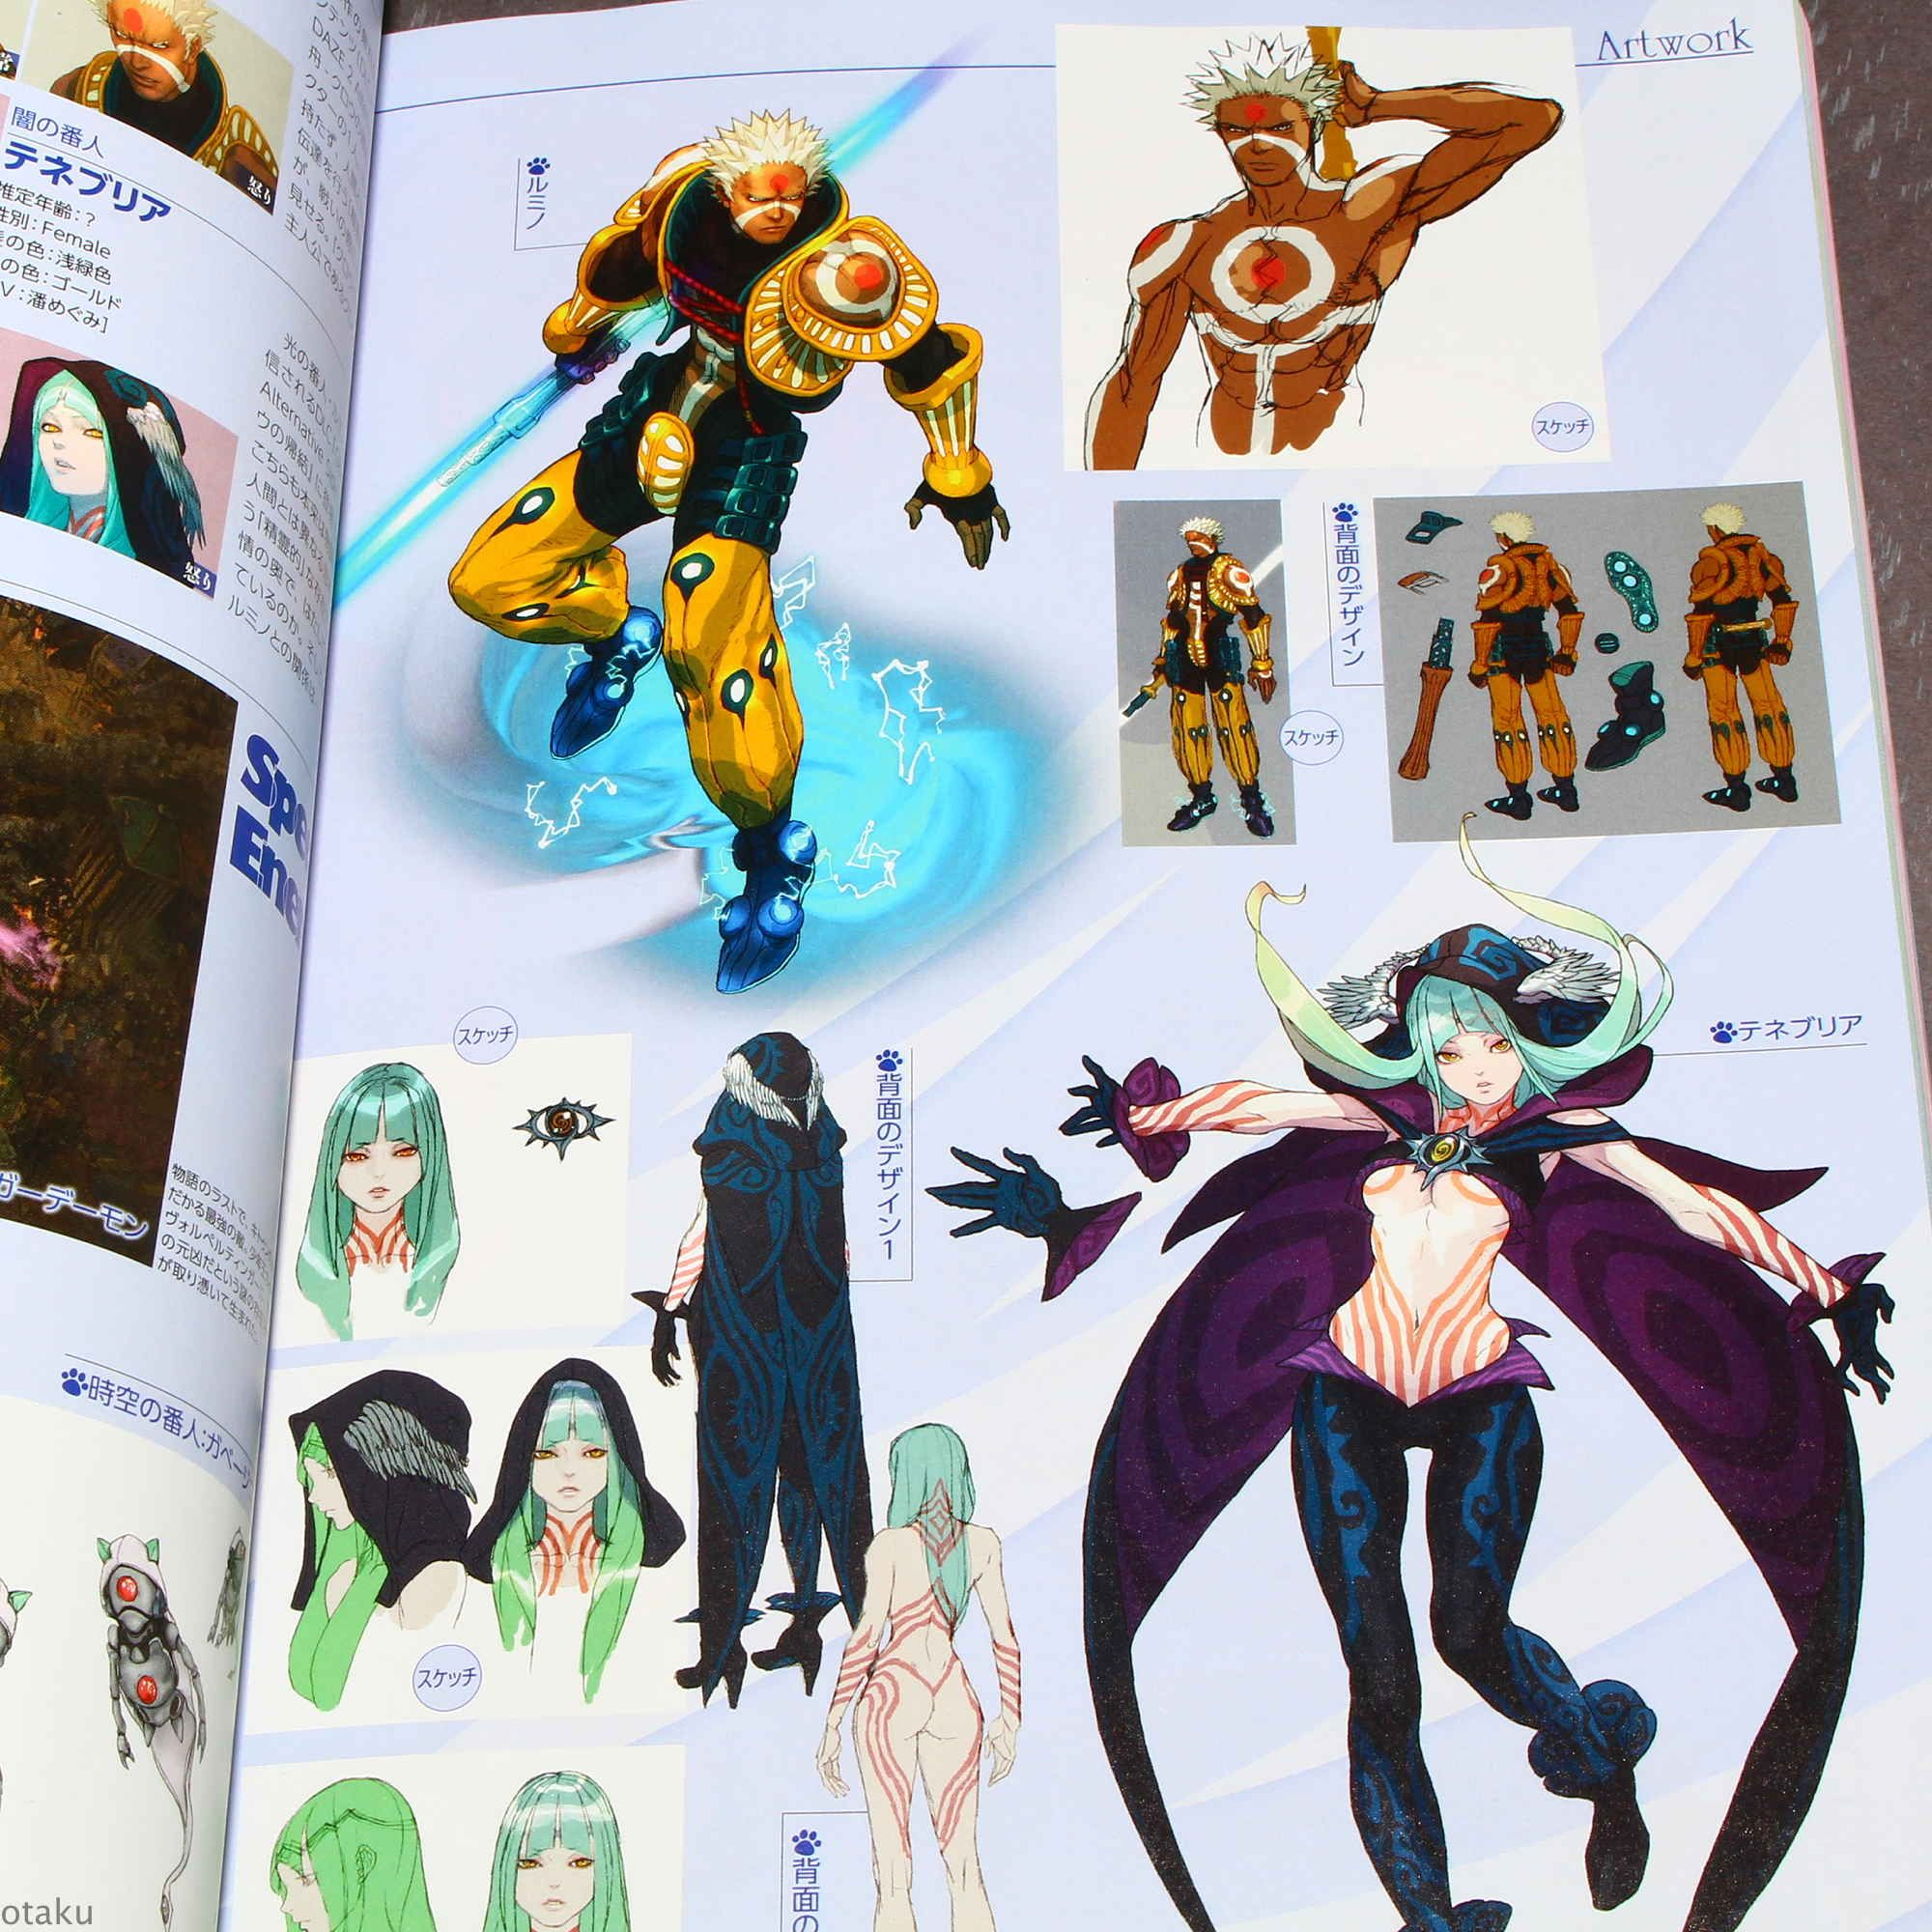 Gravity Daze 2 The Complete Guide Otaku Co Uk Book Art Daze Art